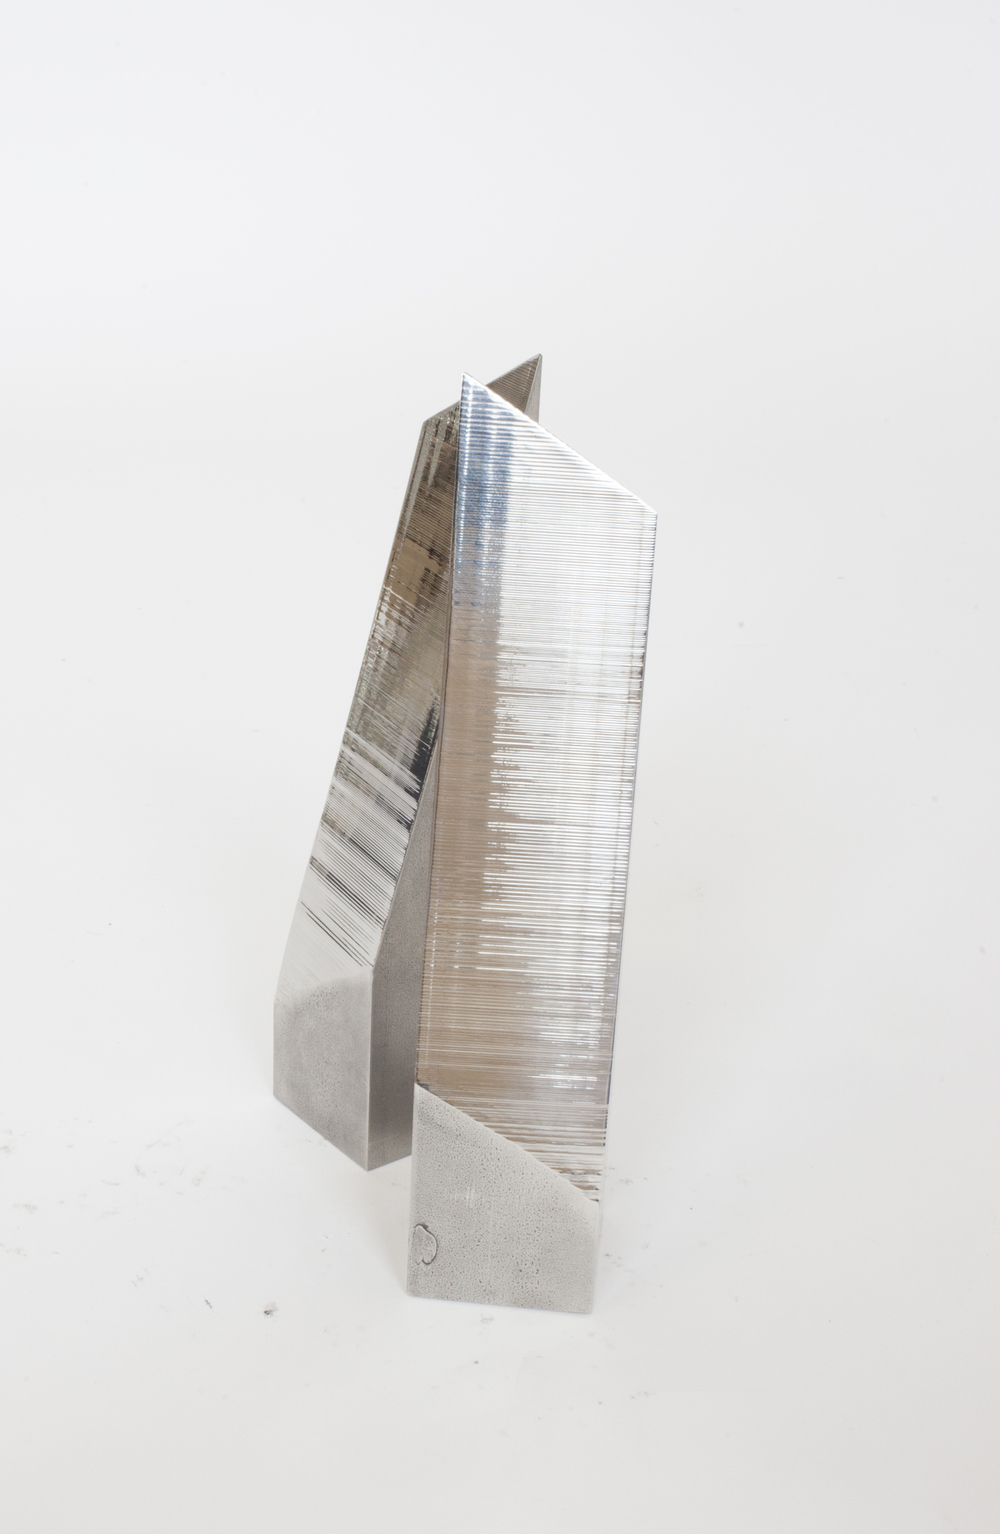 """WEDGE BOOKENDS 1 of 1 STAINLESS STEEL 6.5"""" - 9"""" - 9.5"""" - 10"""" - 11""""H x 2""""W x 2""""D PDF / 1STDIBS IN STOCK / MADE TO ORDER"""